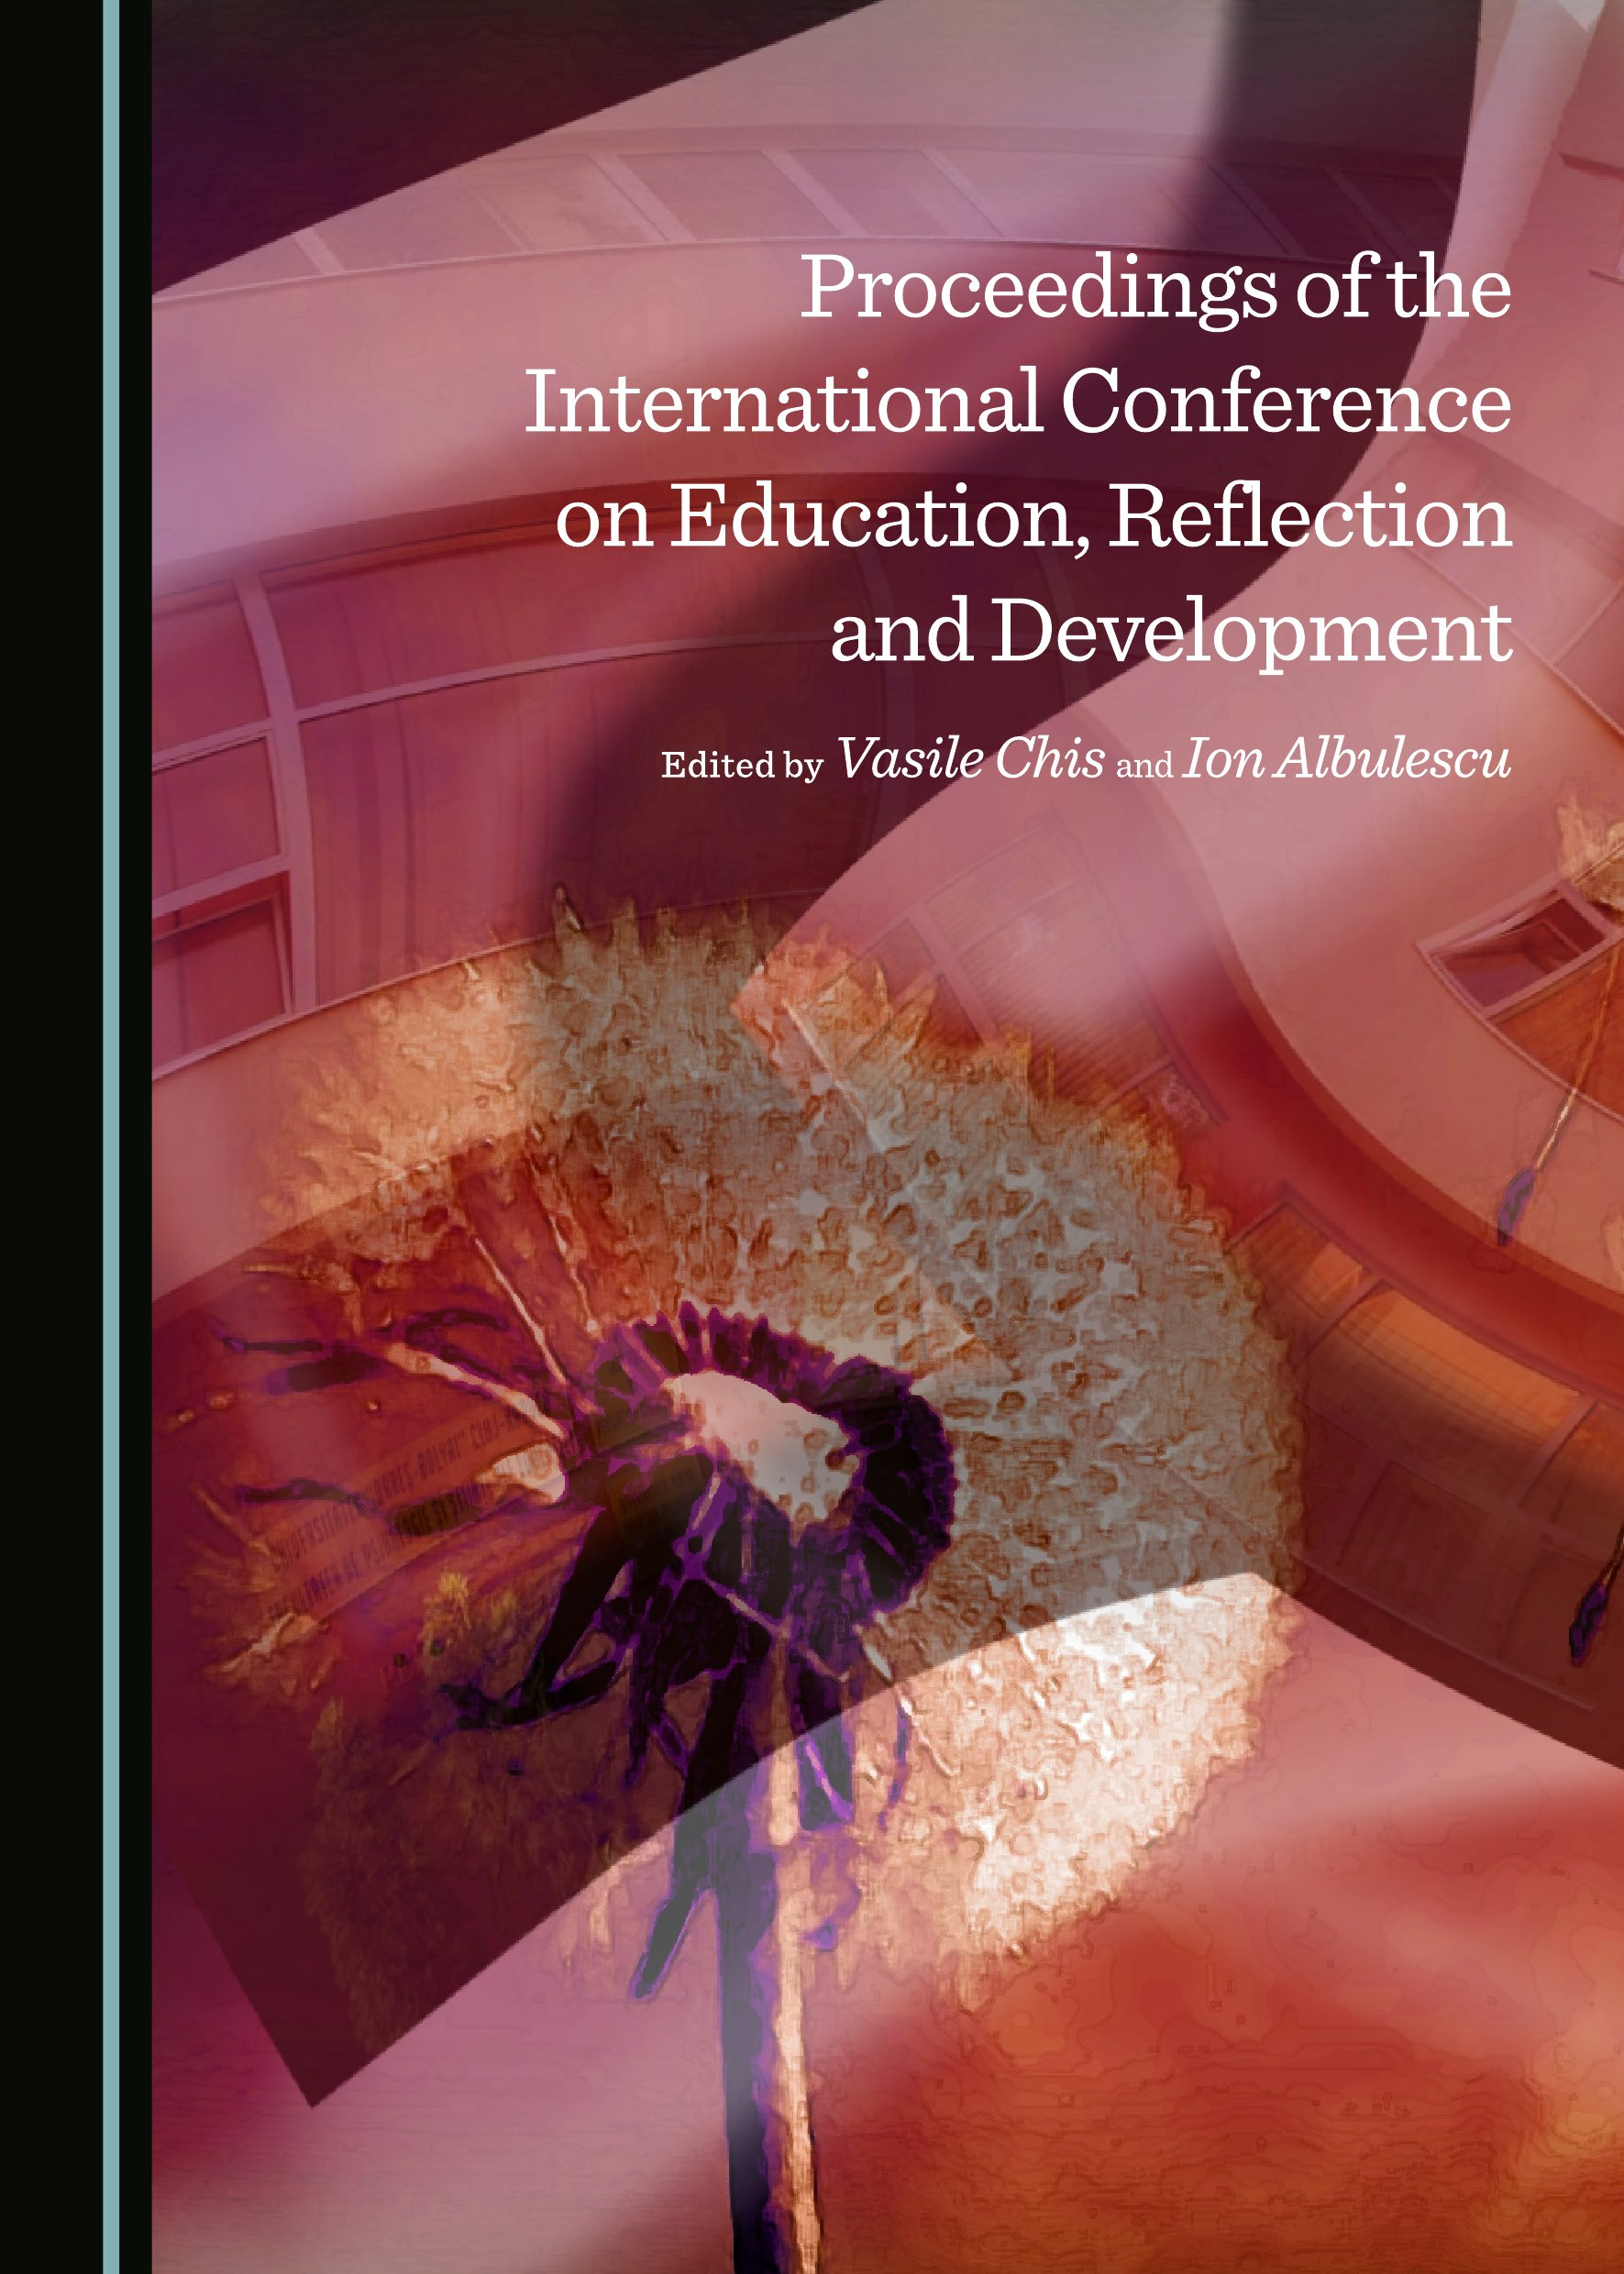 Proceedings of the International Conference on Education, Reflection and Development